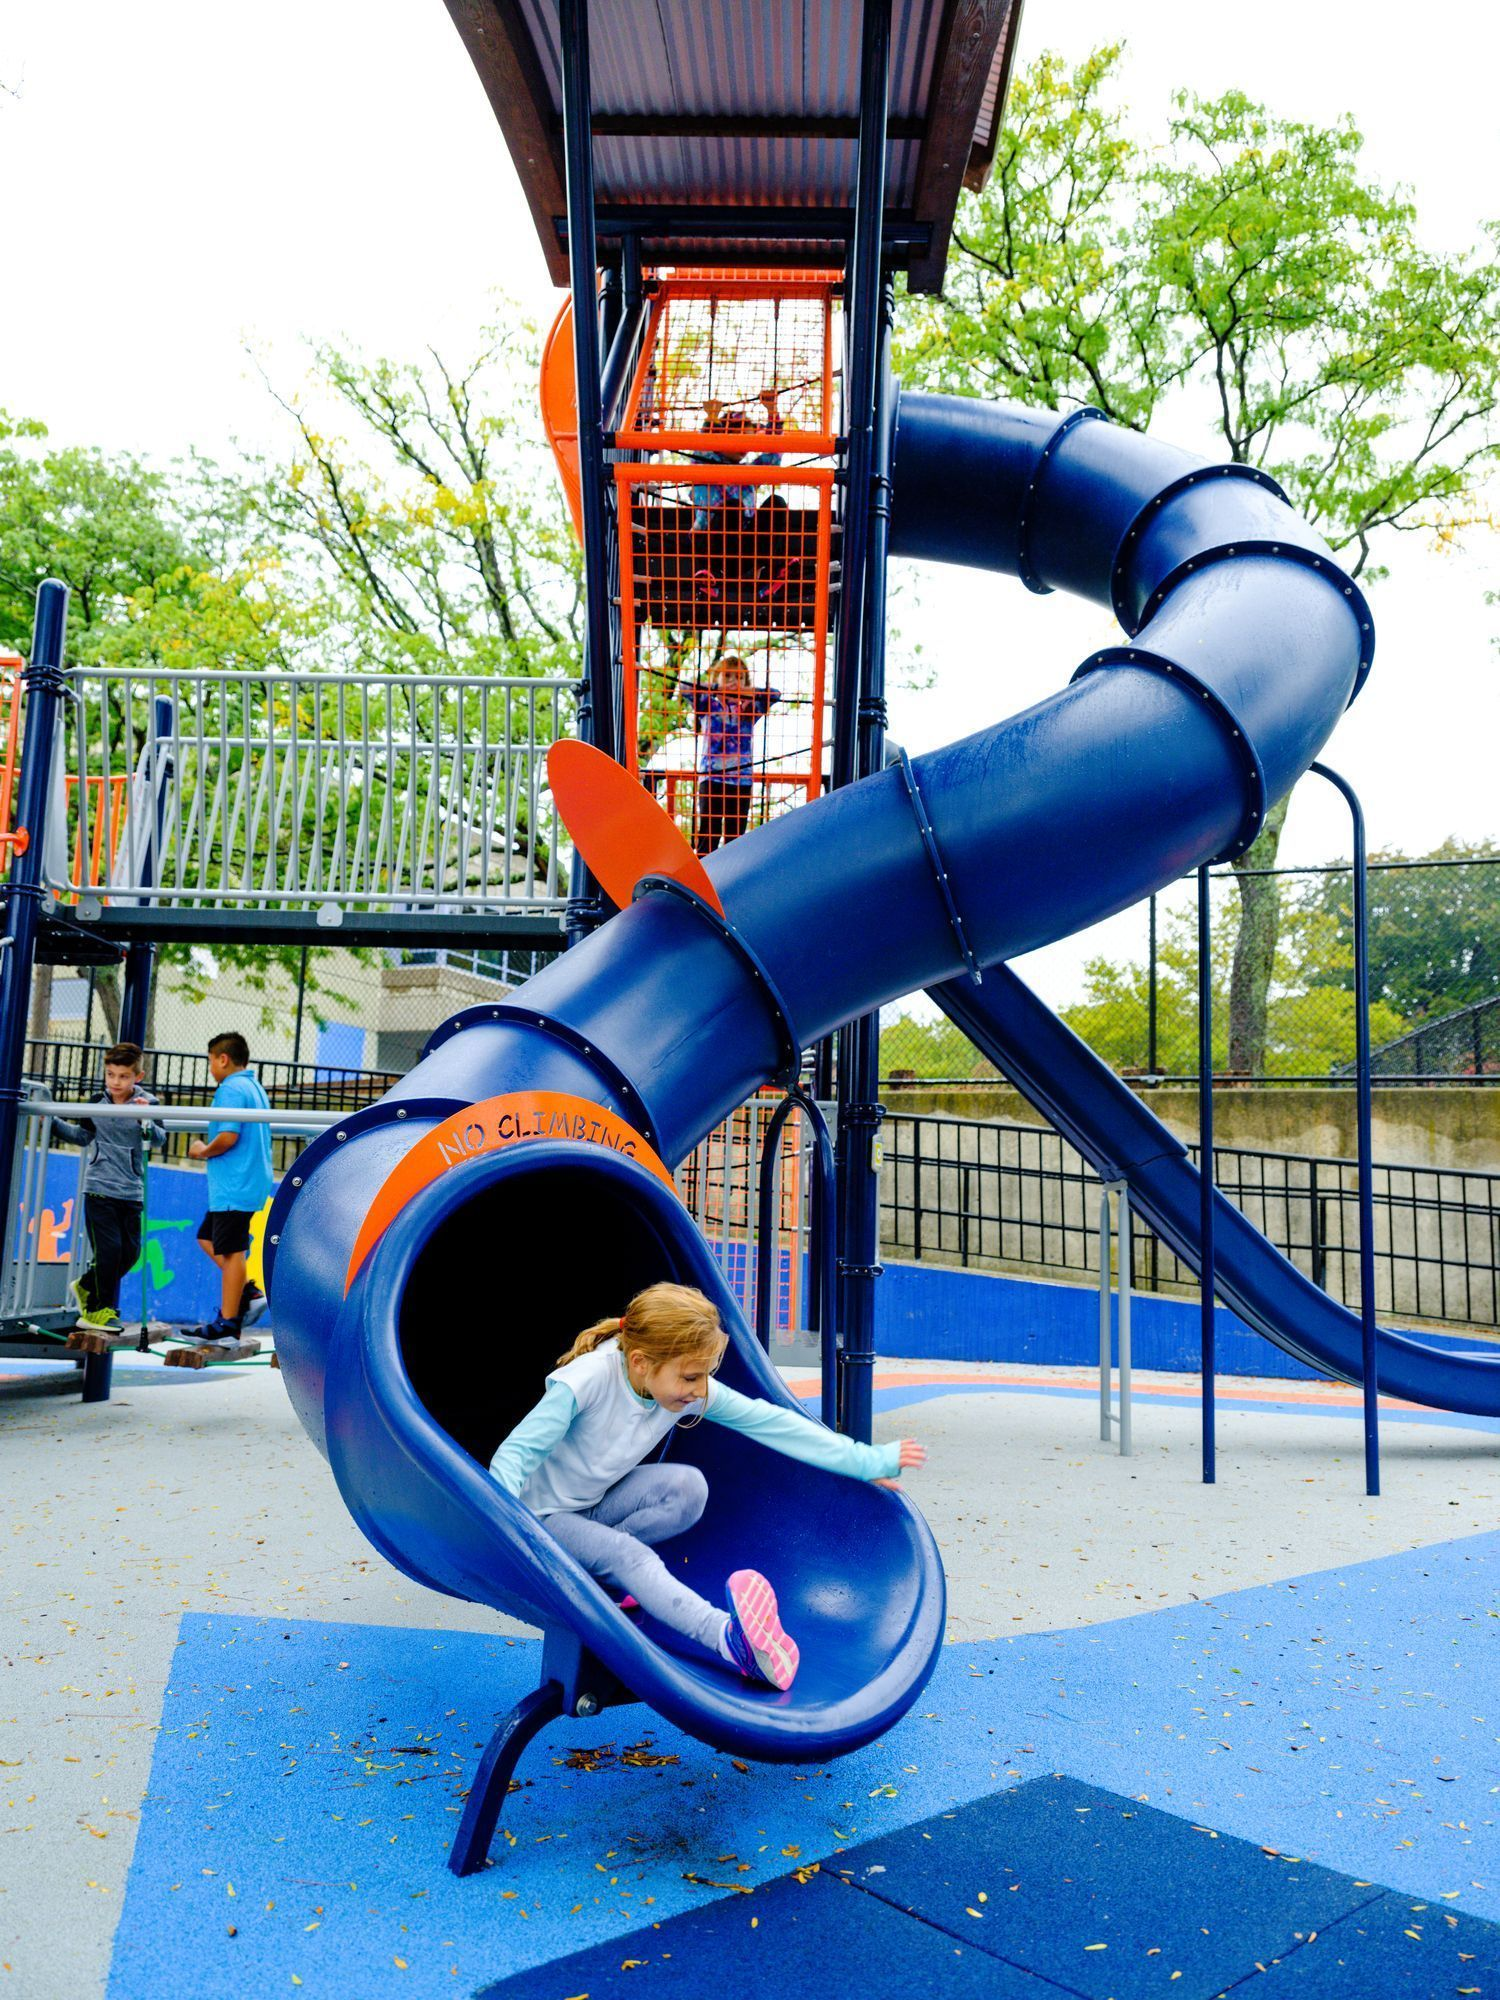 Blue curved playground slide at Winter Hill School